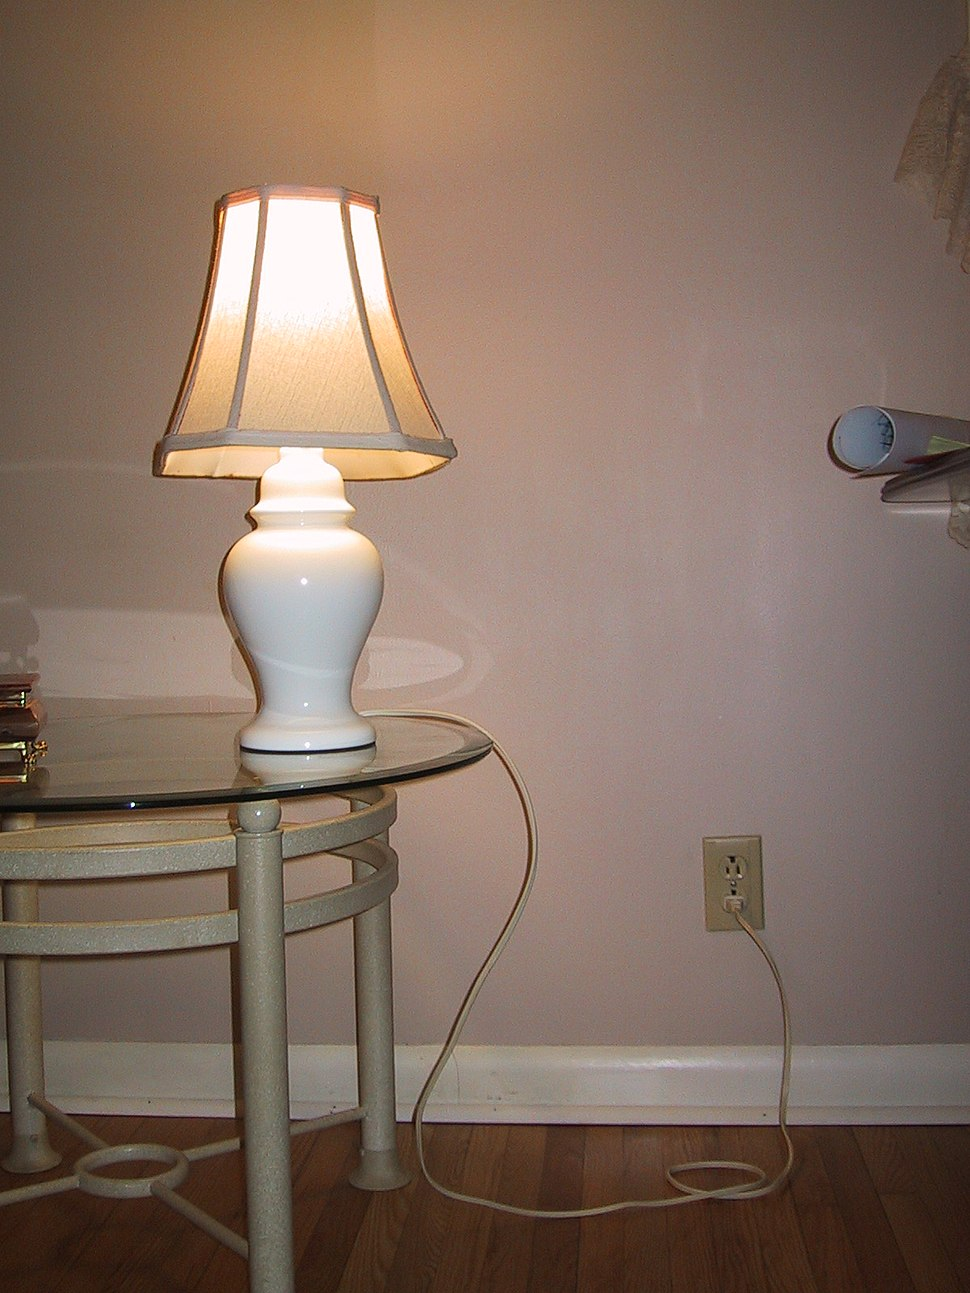 Mains powered electric Lamp